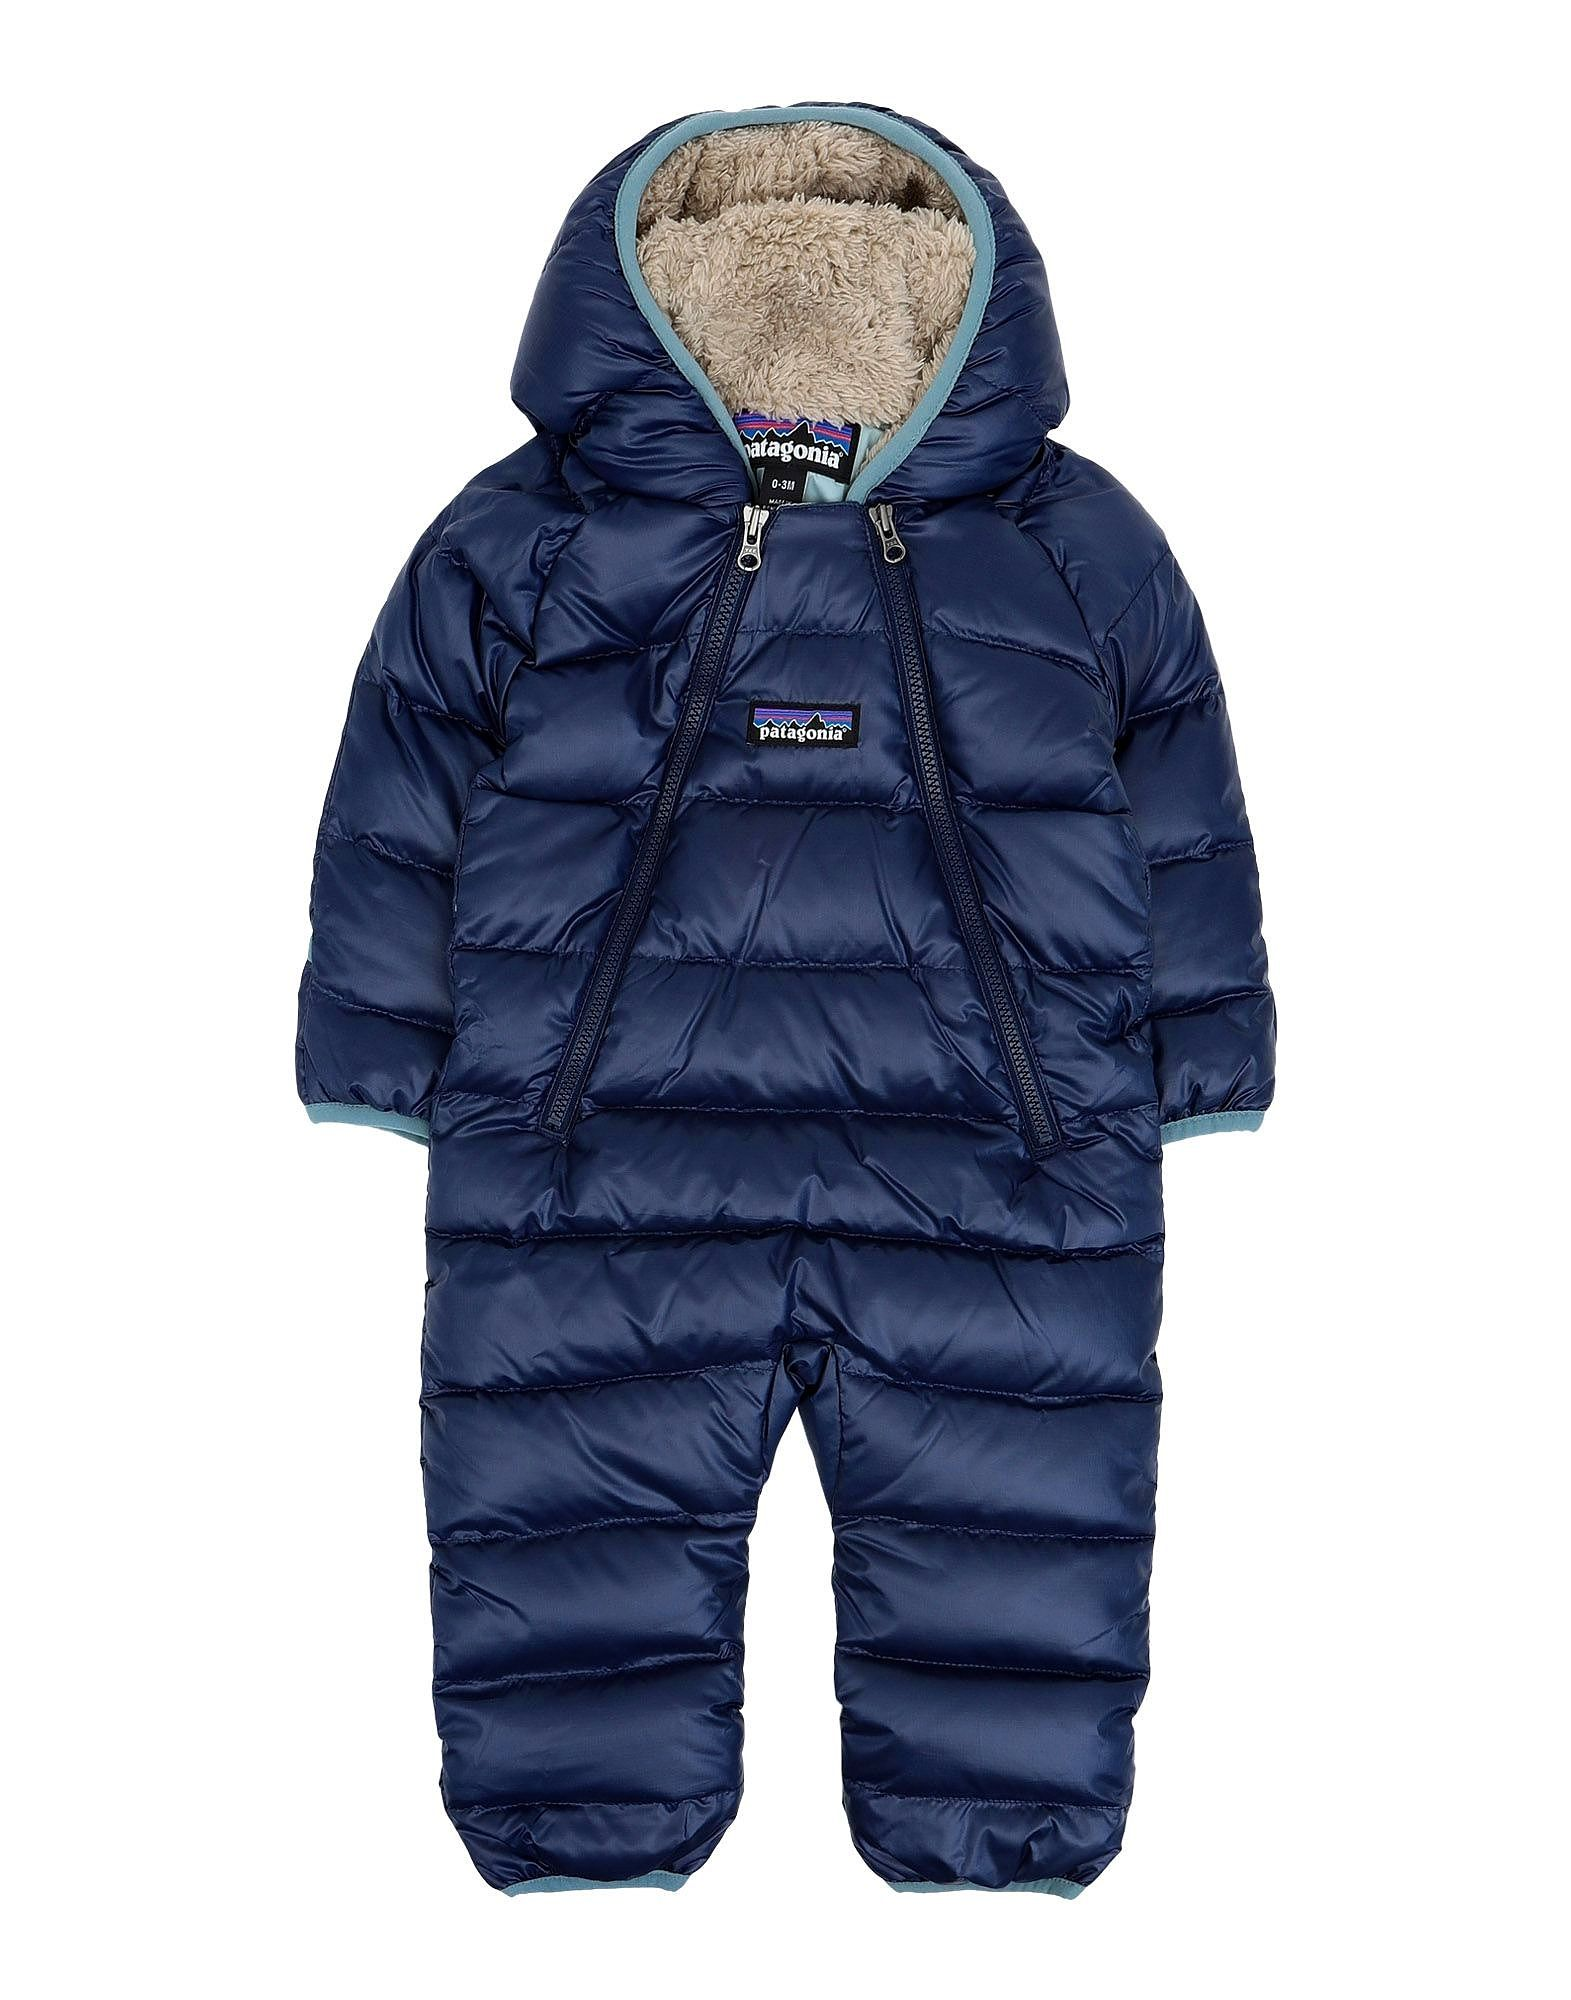 Patagonia Snow Wear Girl 0 24 Months Online On Yoox Poland How To Wear Snow Wear Patagonia